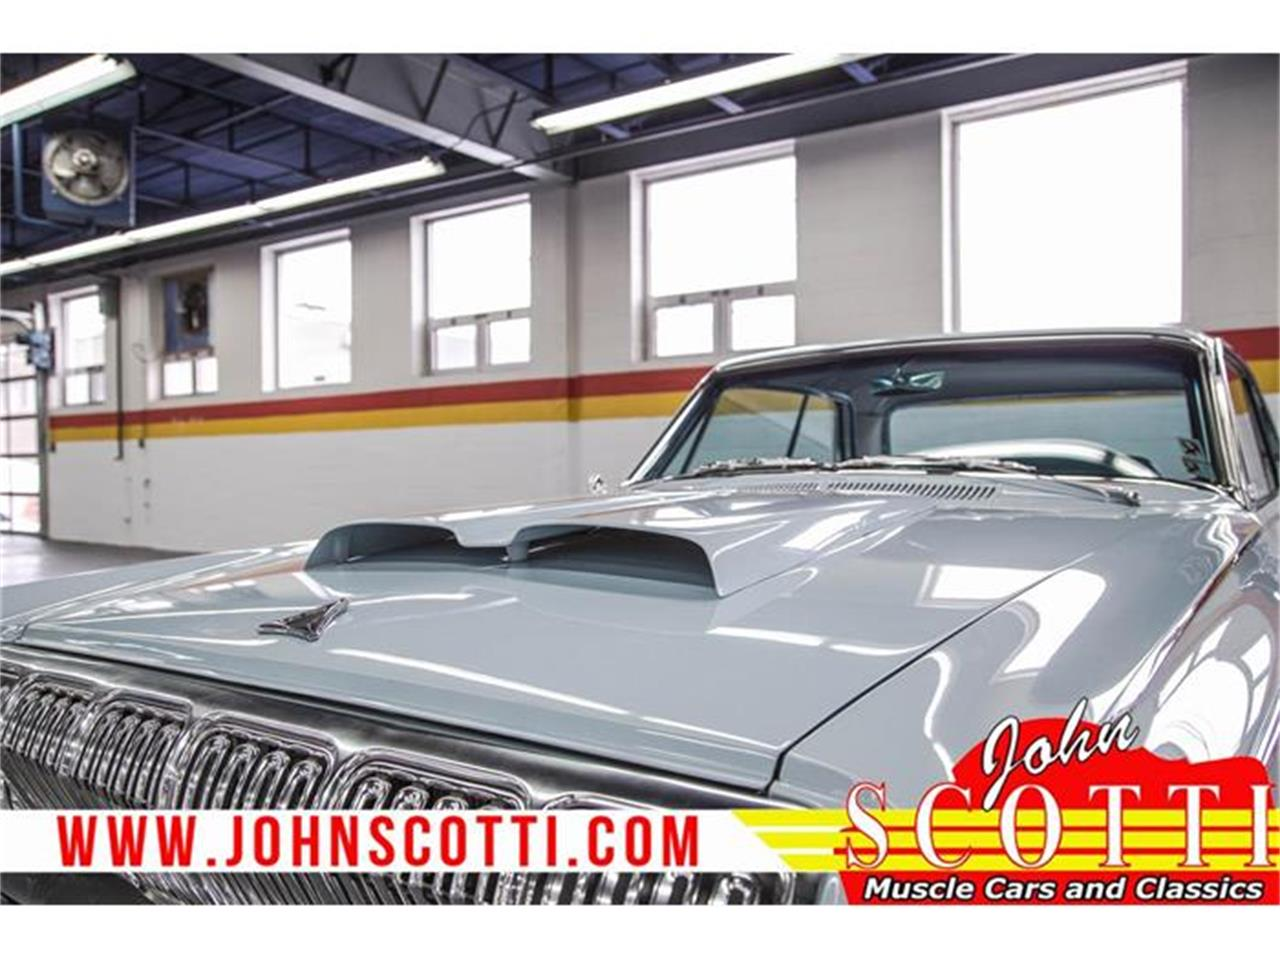 Large Picture of Classic '63 Polara - $54,500.00 Offered by John Scotti Classic Cars - GA0M